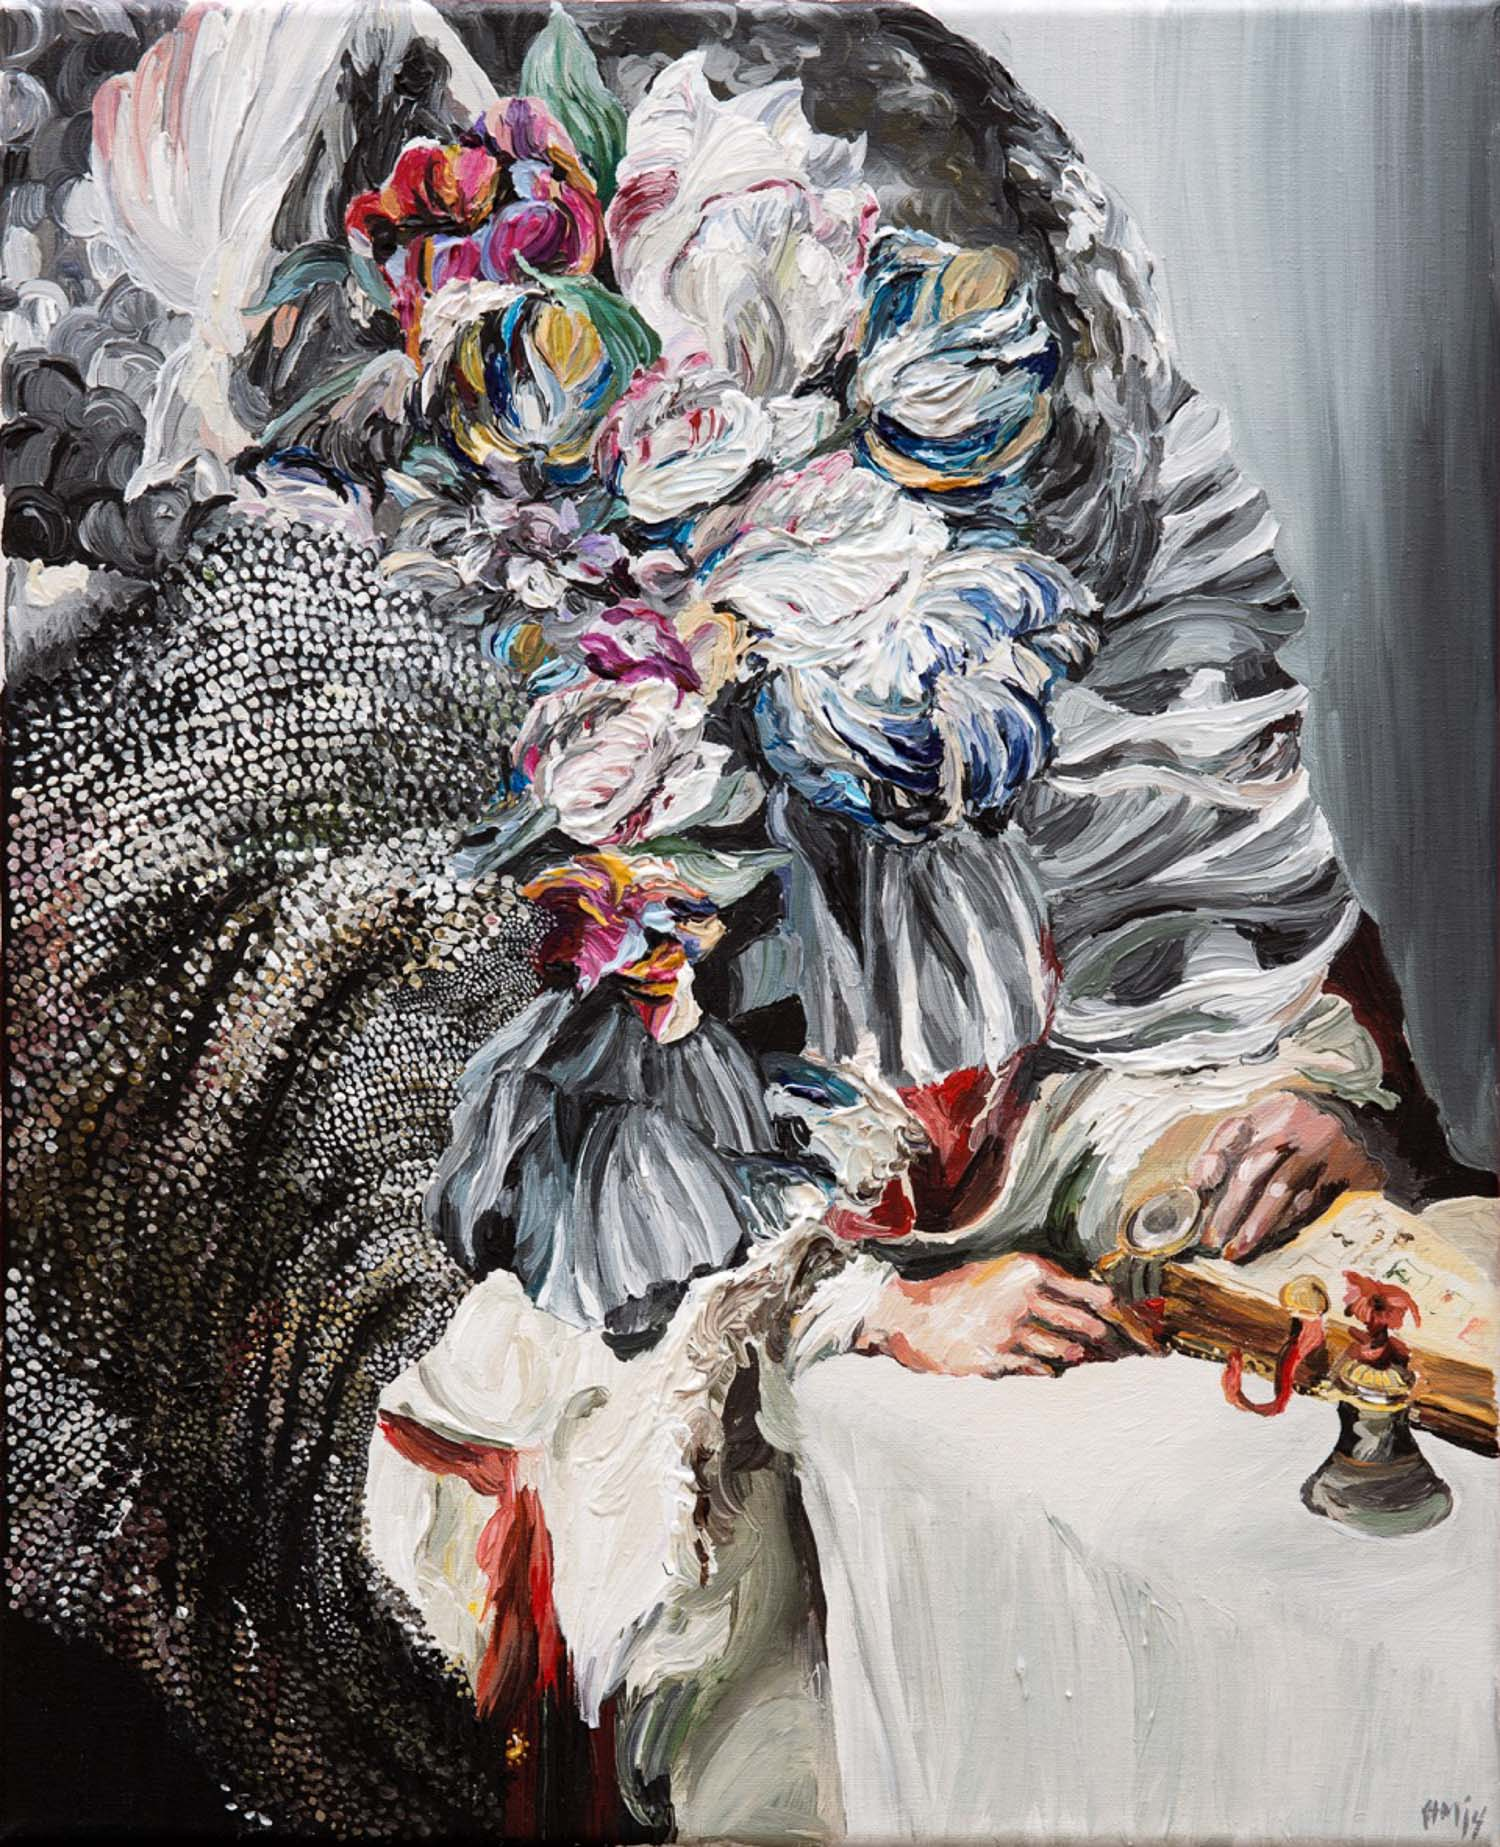 The Maid of Magnificence, 2014